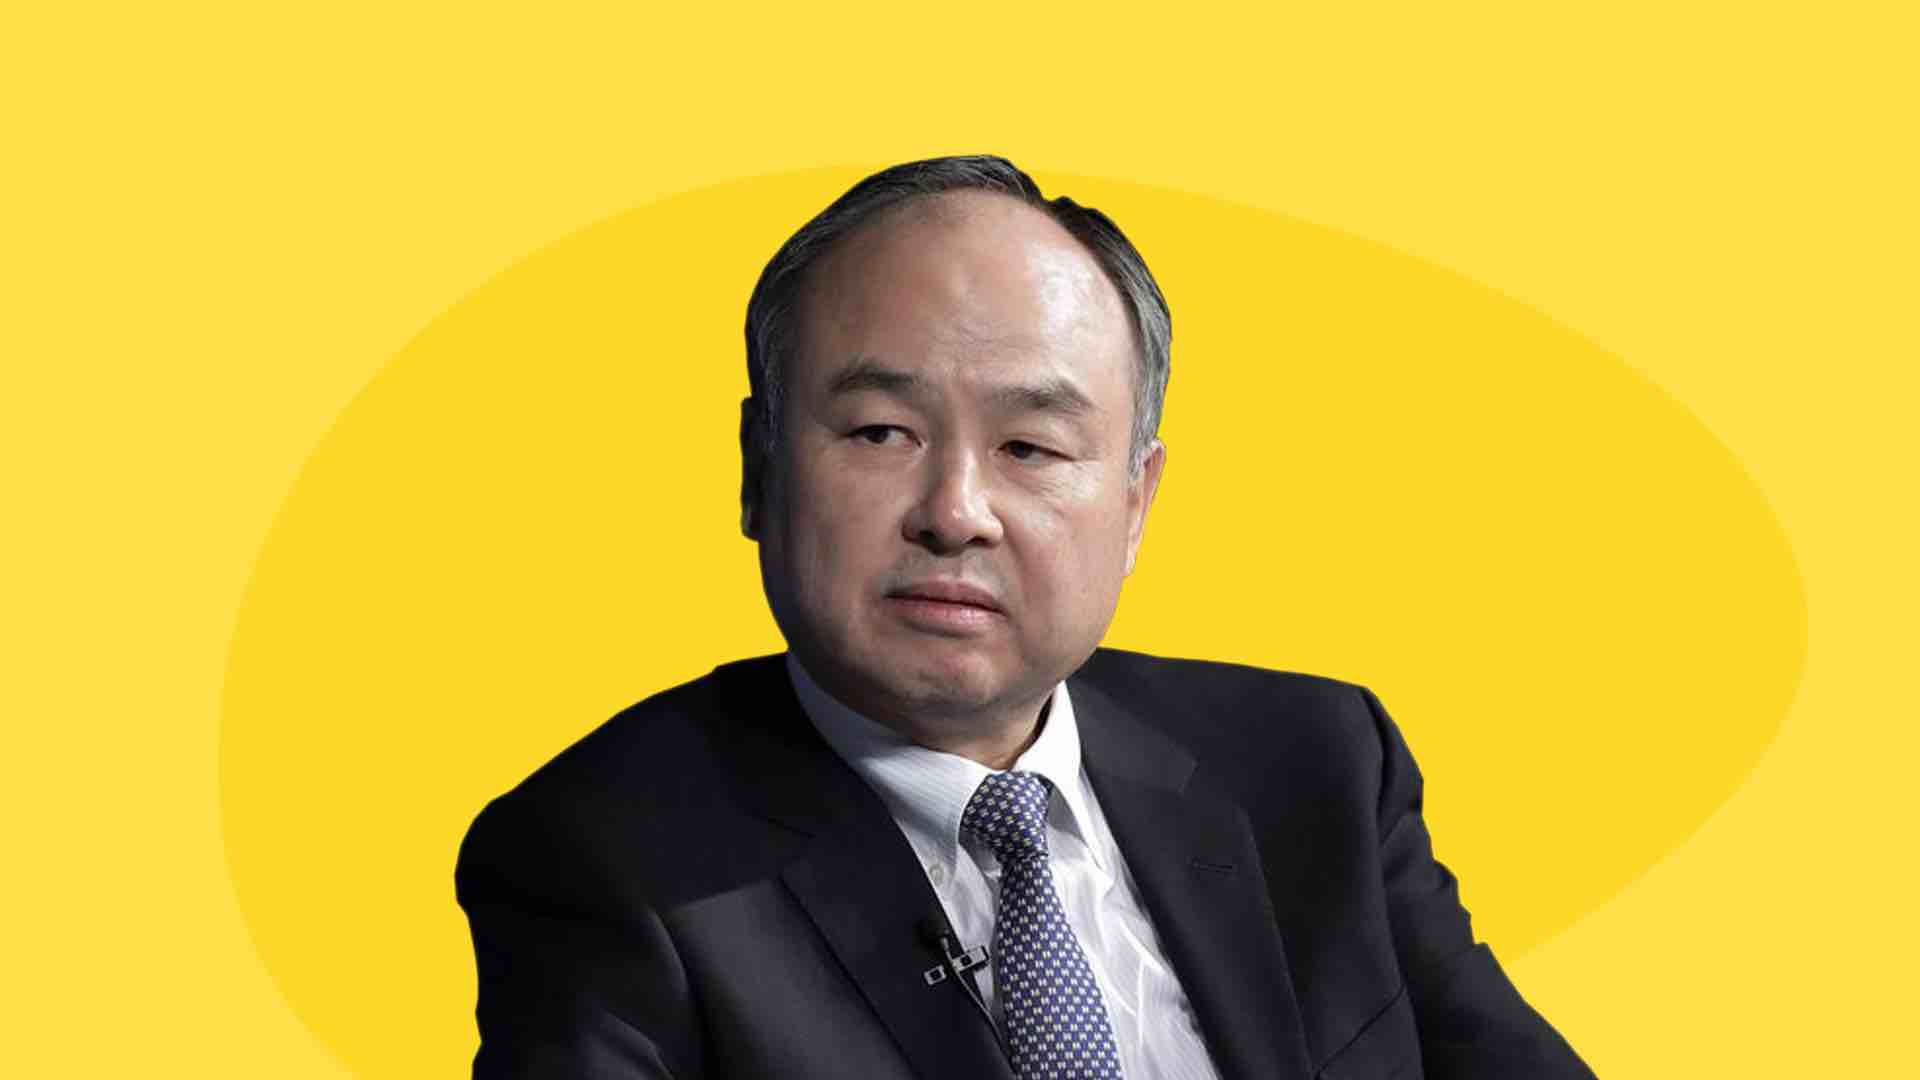 Softbank - Image contains Masayoshi Son from Softbank over a yellow background